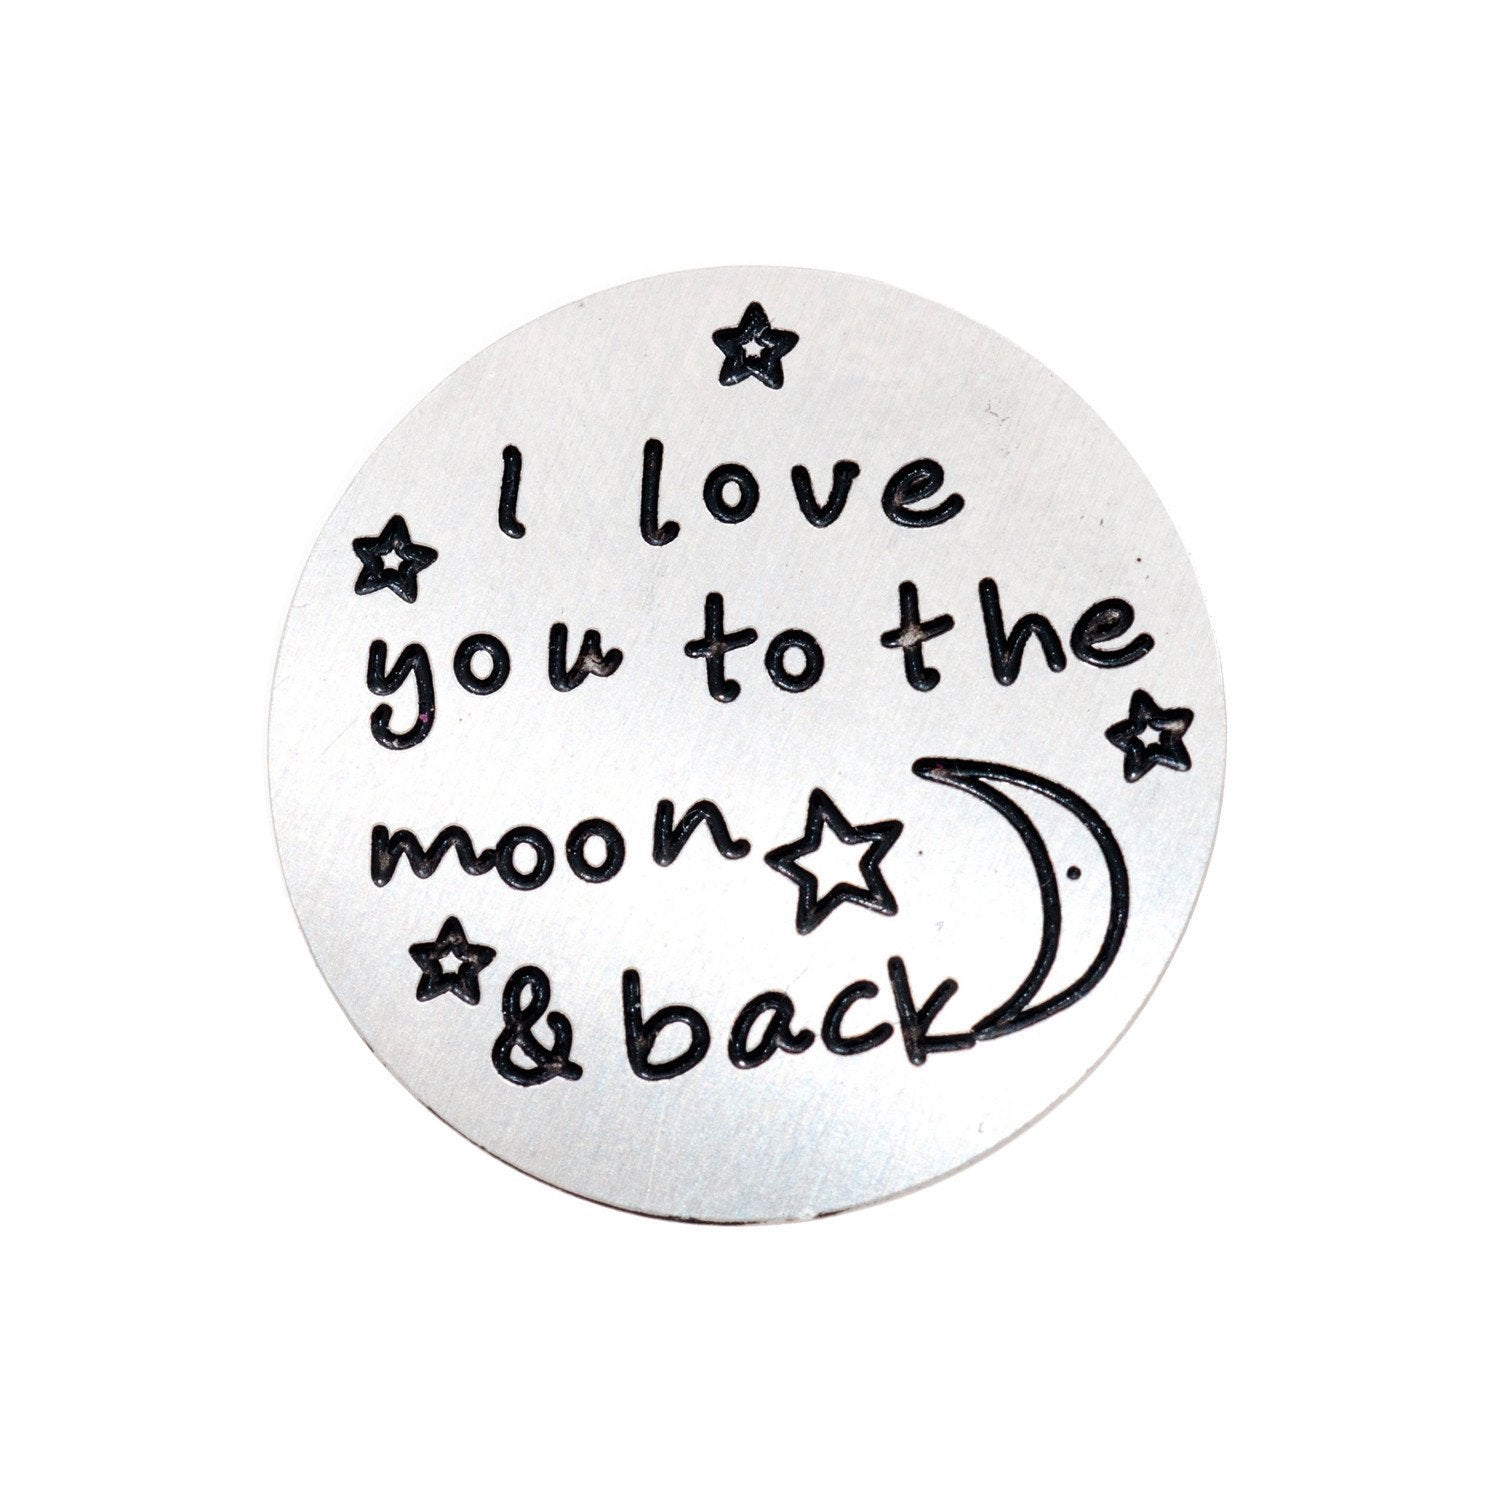 Back plate for use with large Memory Lockets - 'I love you to the moon and back'